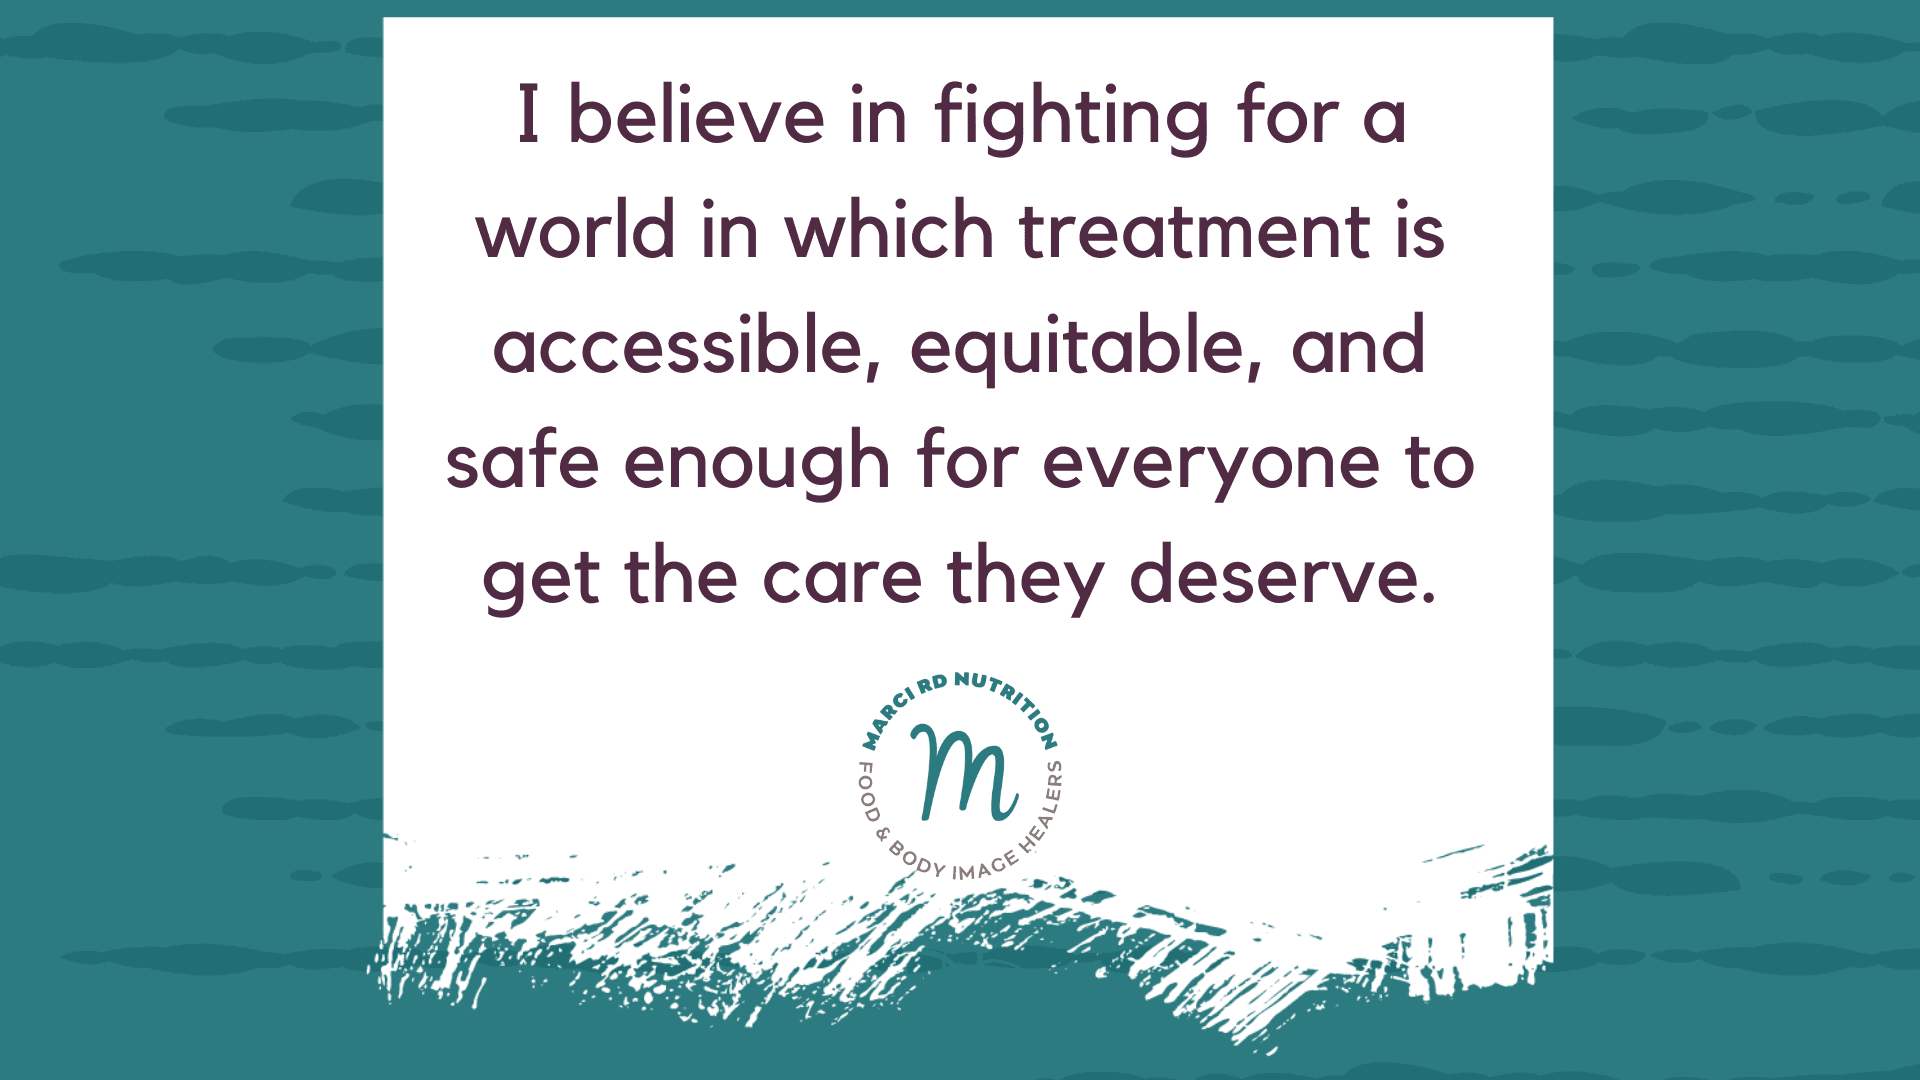 eating disorder treatment needs to be accessible, equitable, and safe enough for everyone